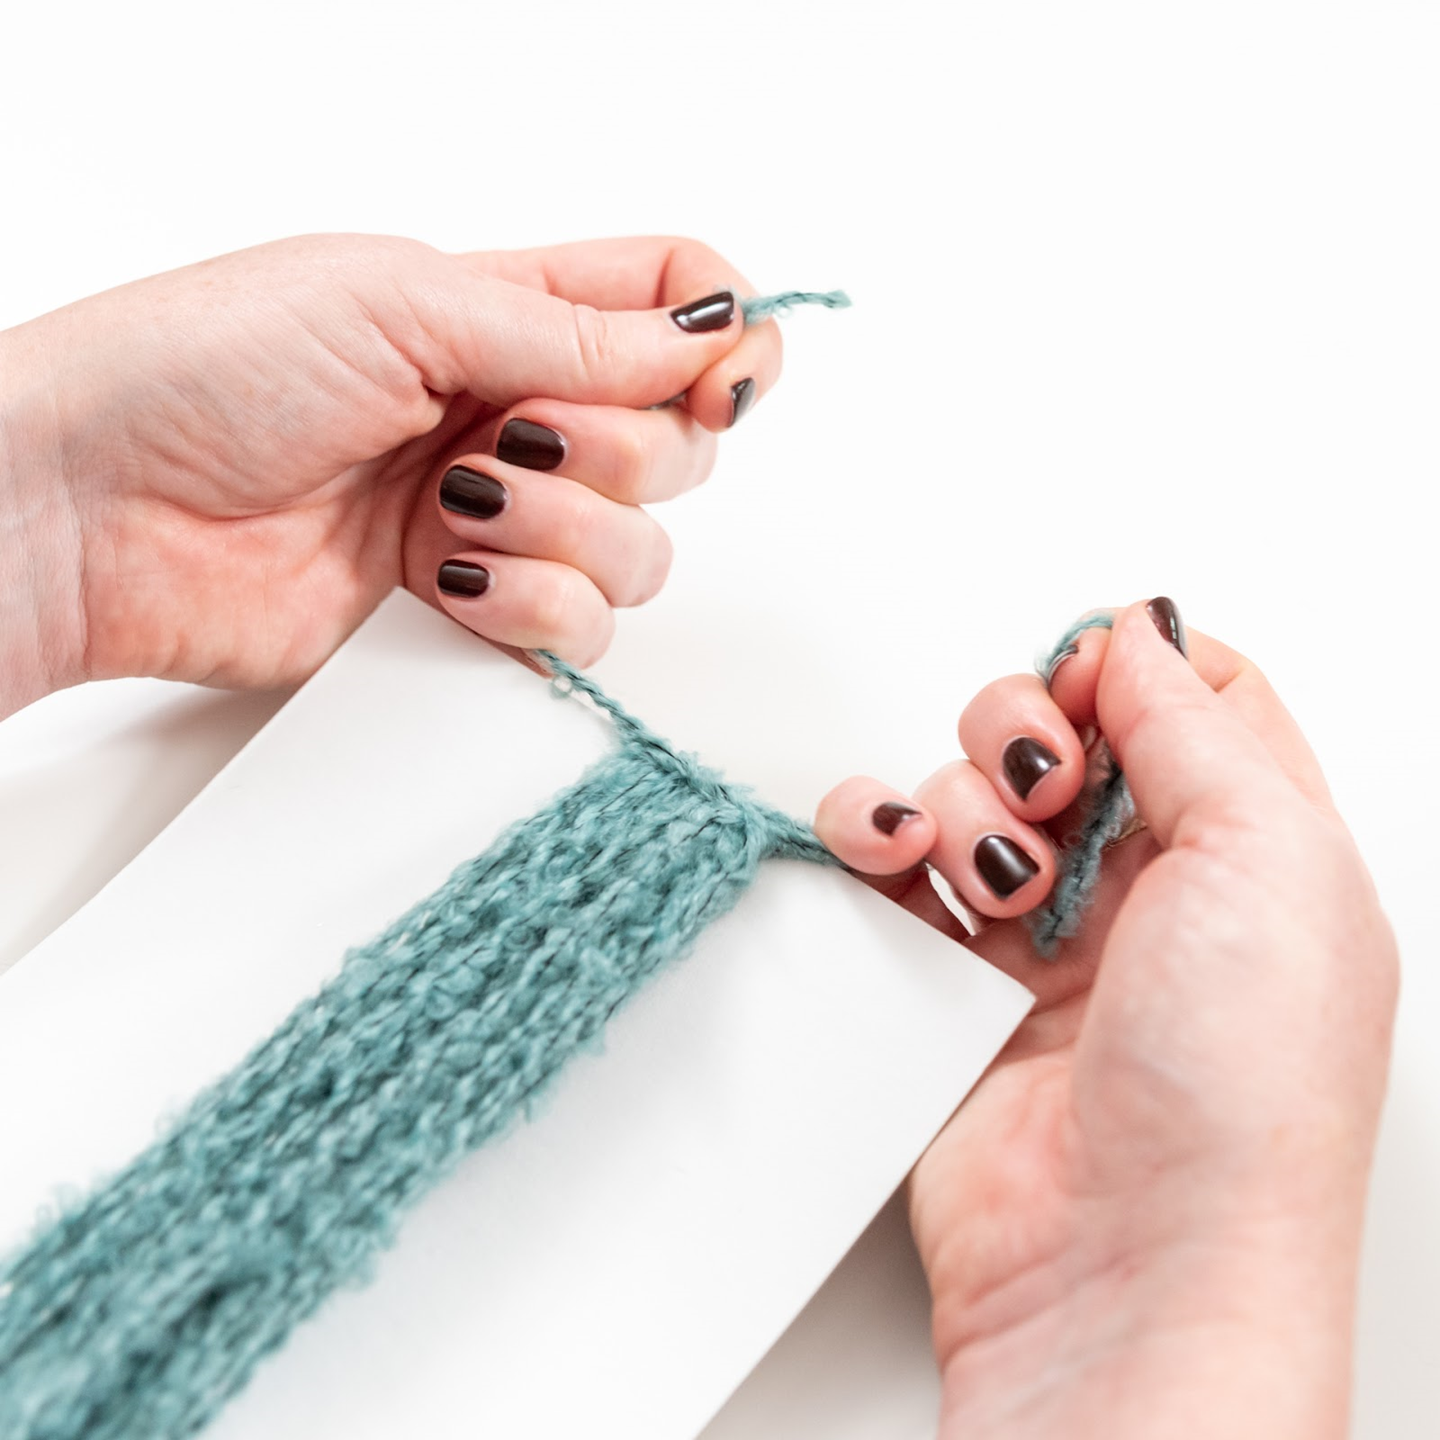 tie yarn in a knot at the top